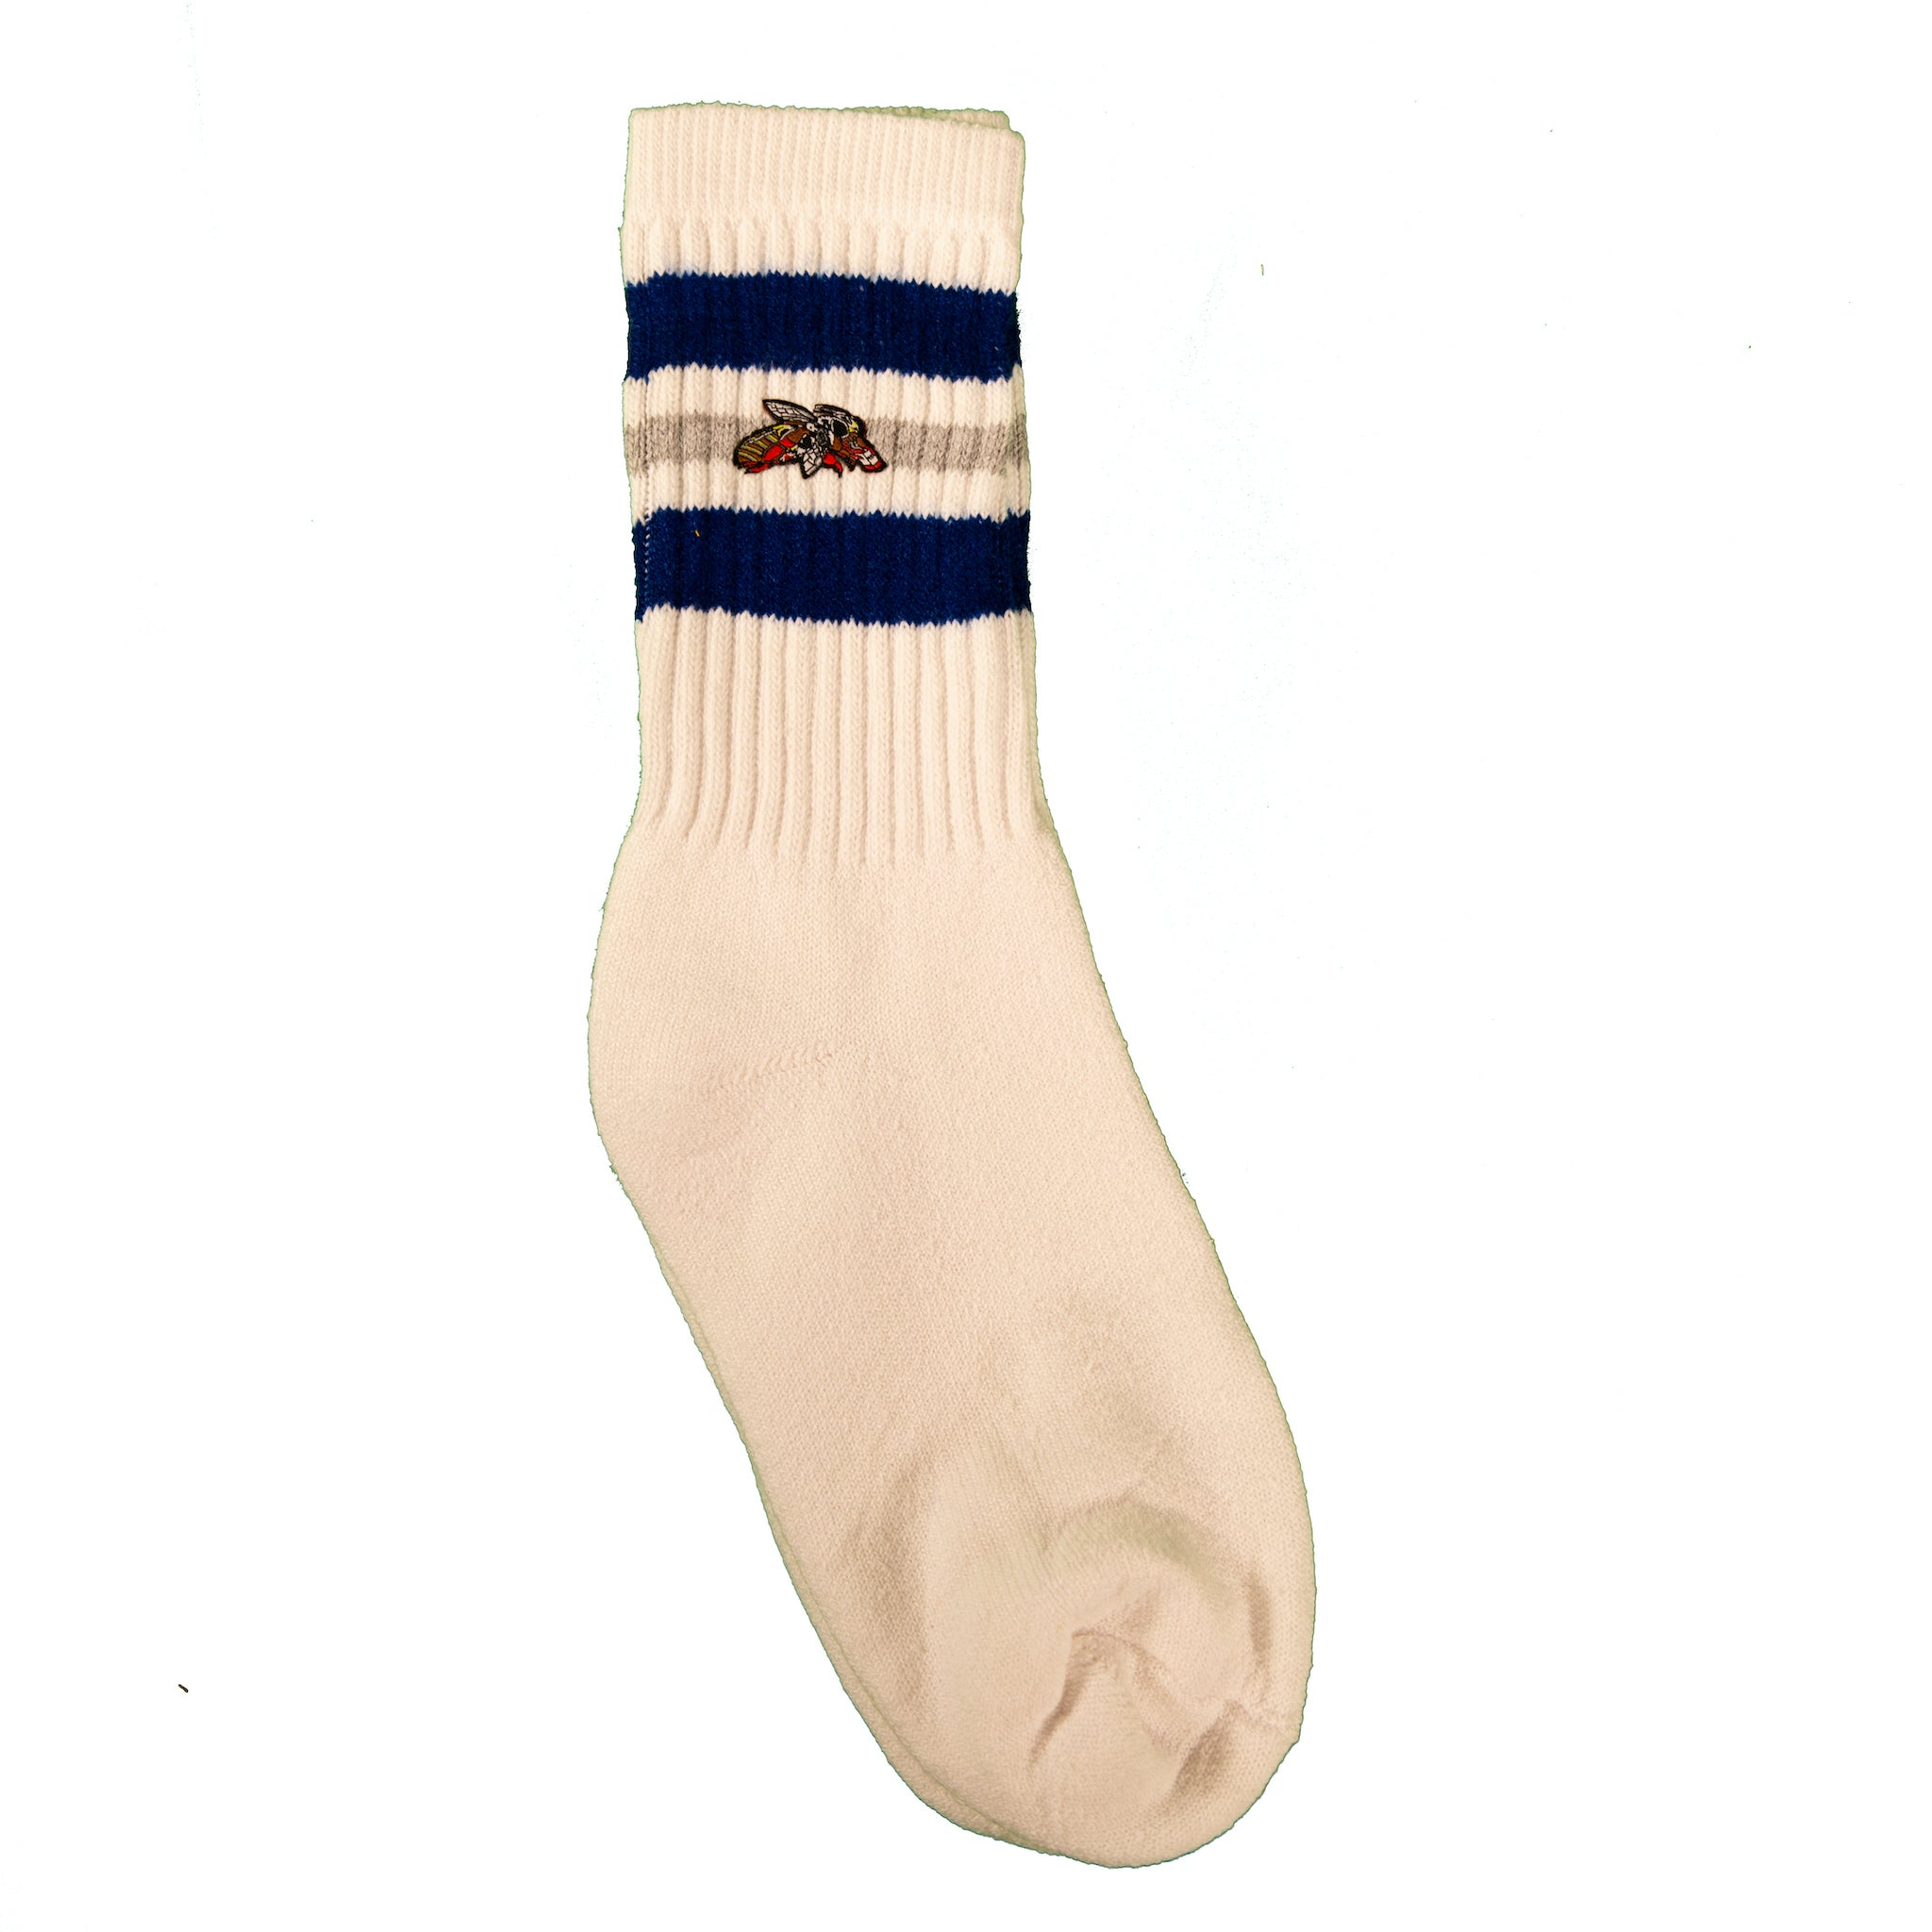 Milk And Honey Classic Tube Socks in Royal and Gray